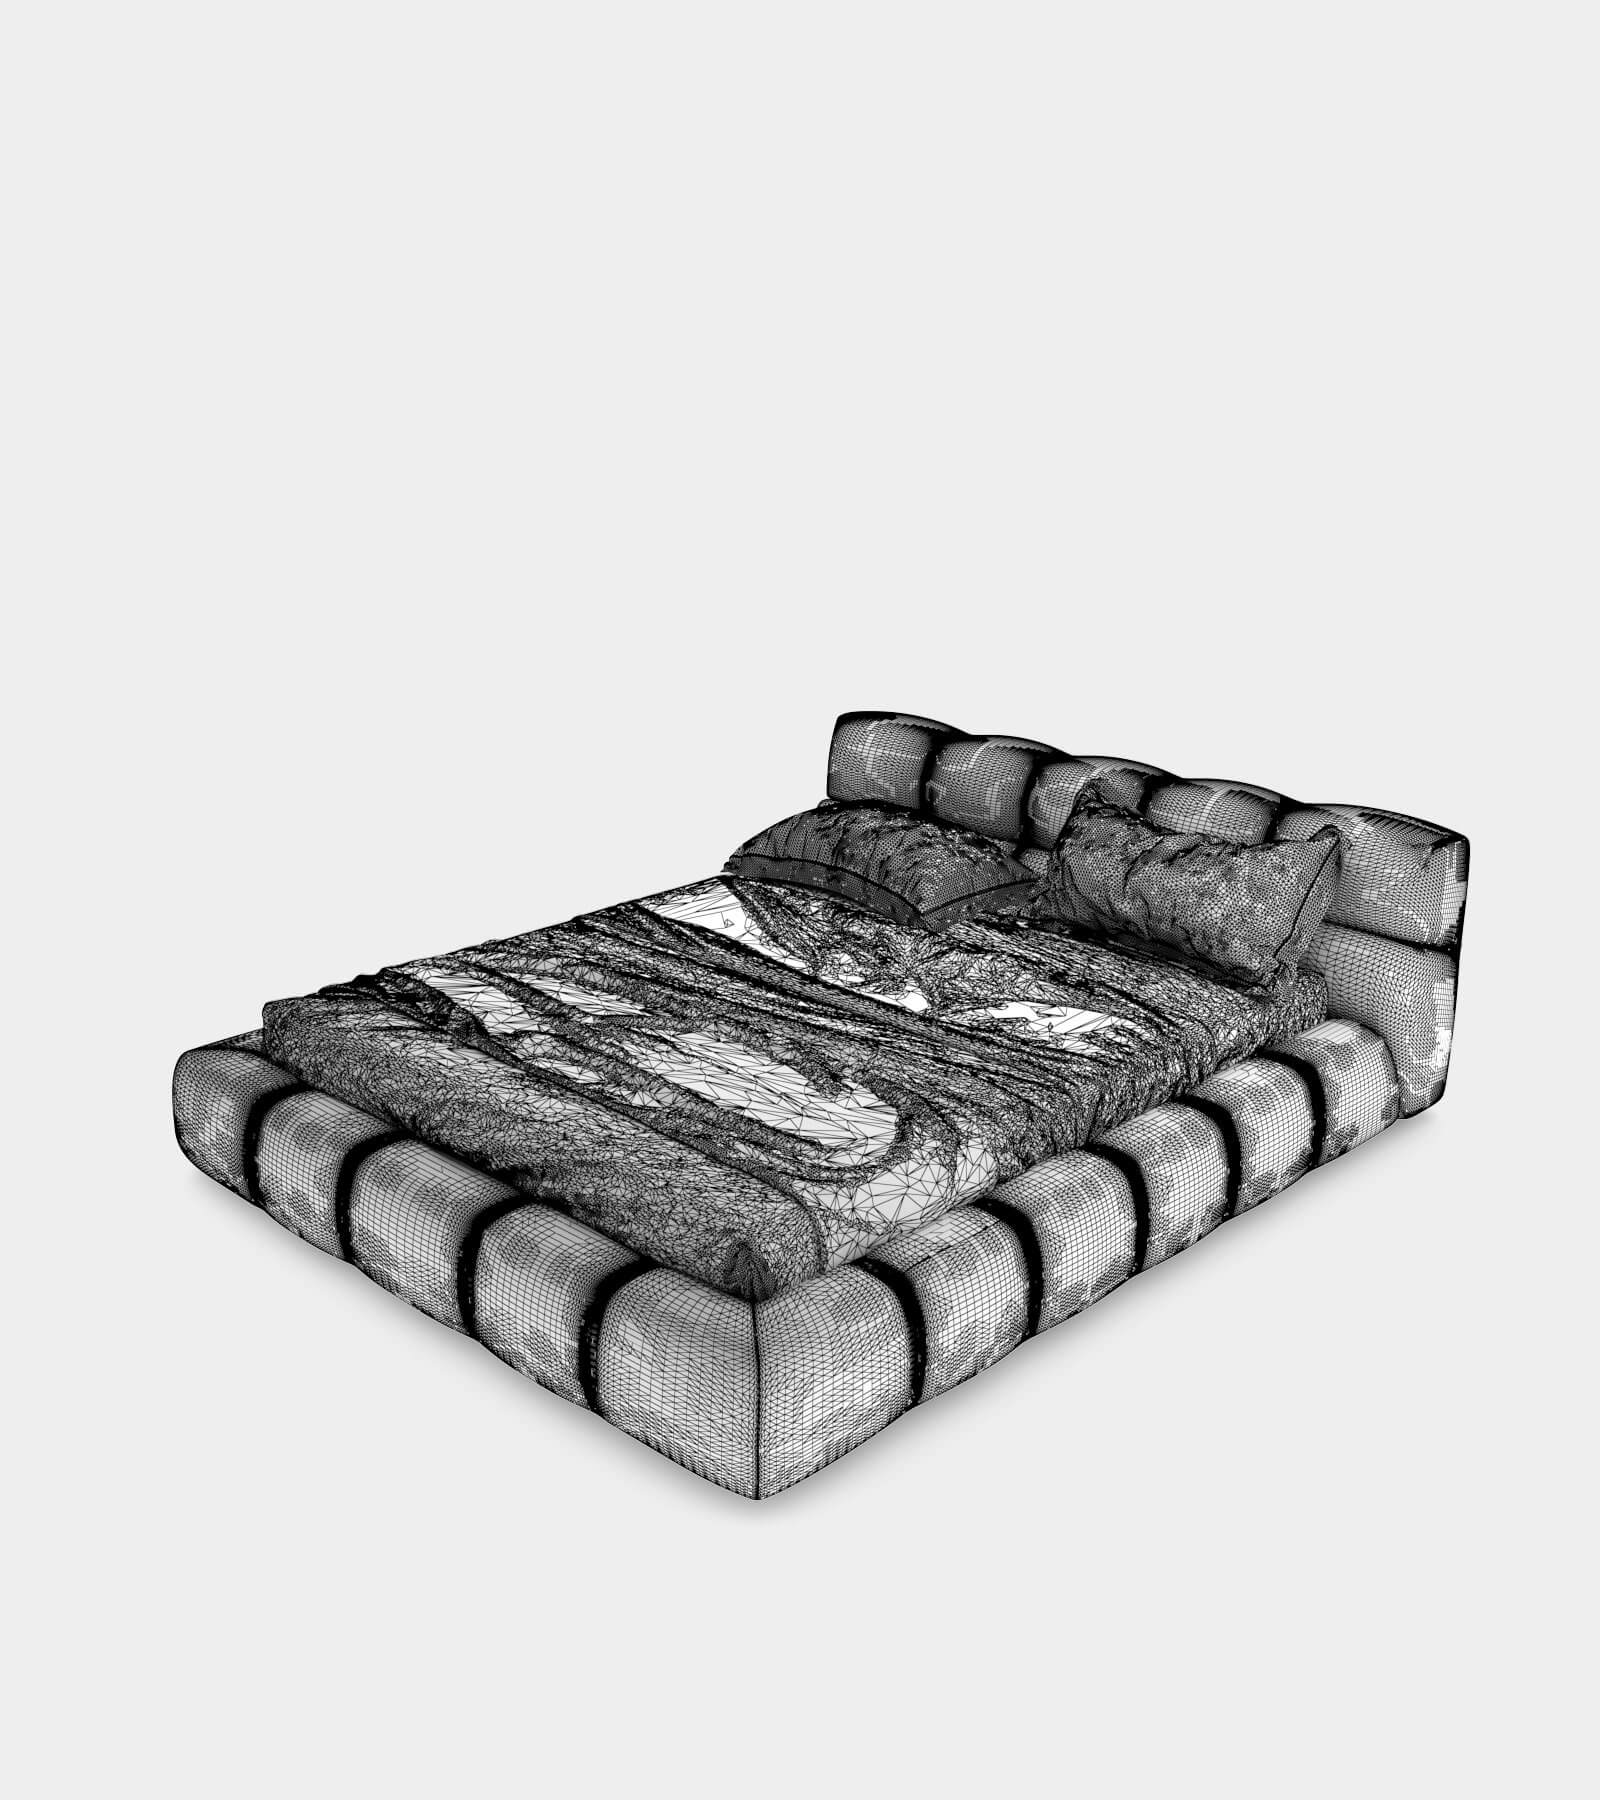 Modern leather bed-wire-2 3D Model